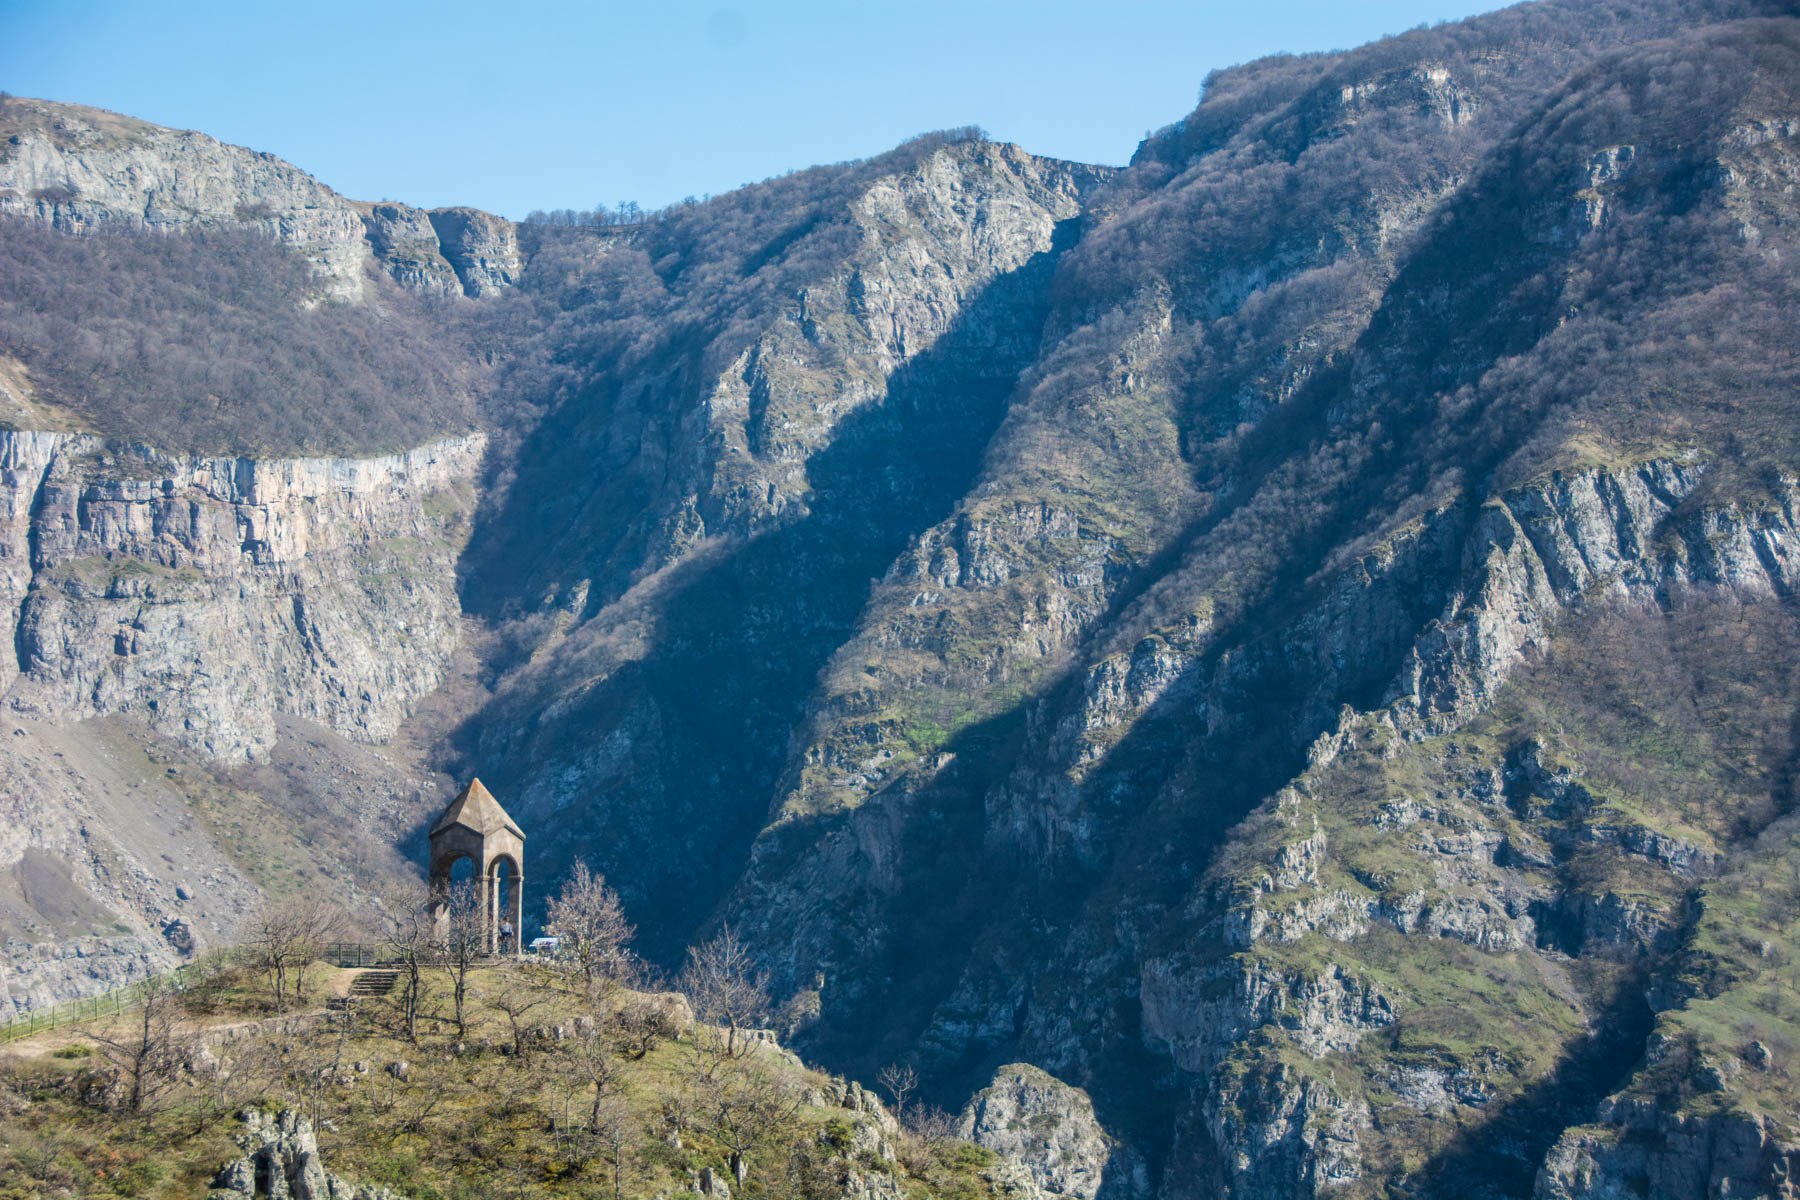 How to get to Tatev from Goris, Armenia - Harsnadzor Watchtower near Tatev monastery in Armenia.